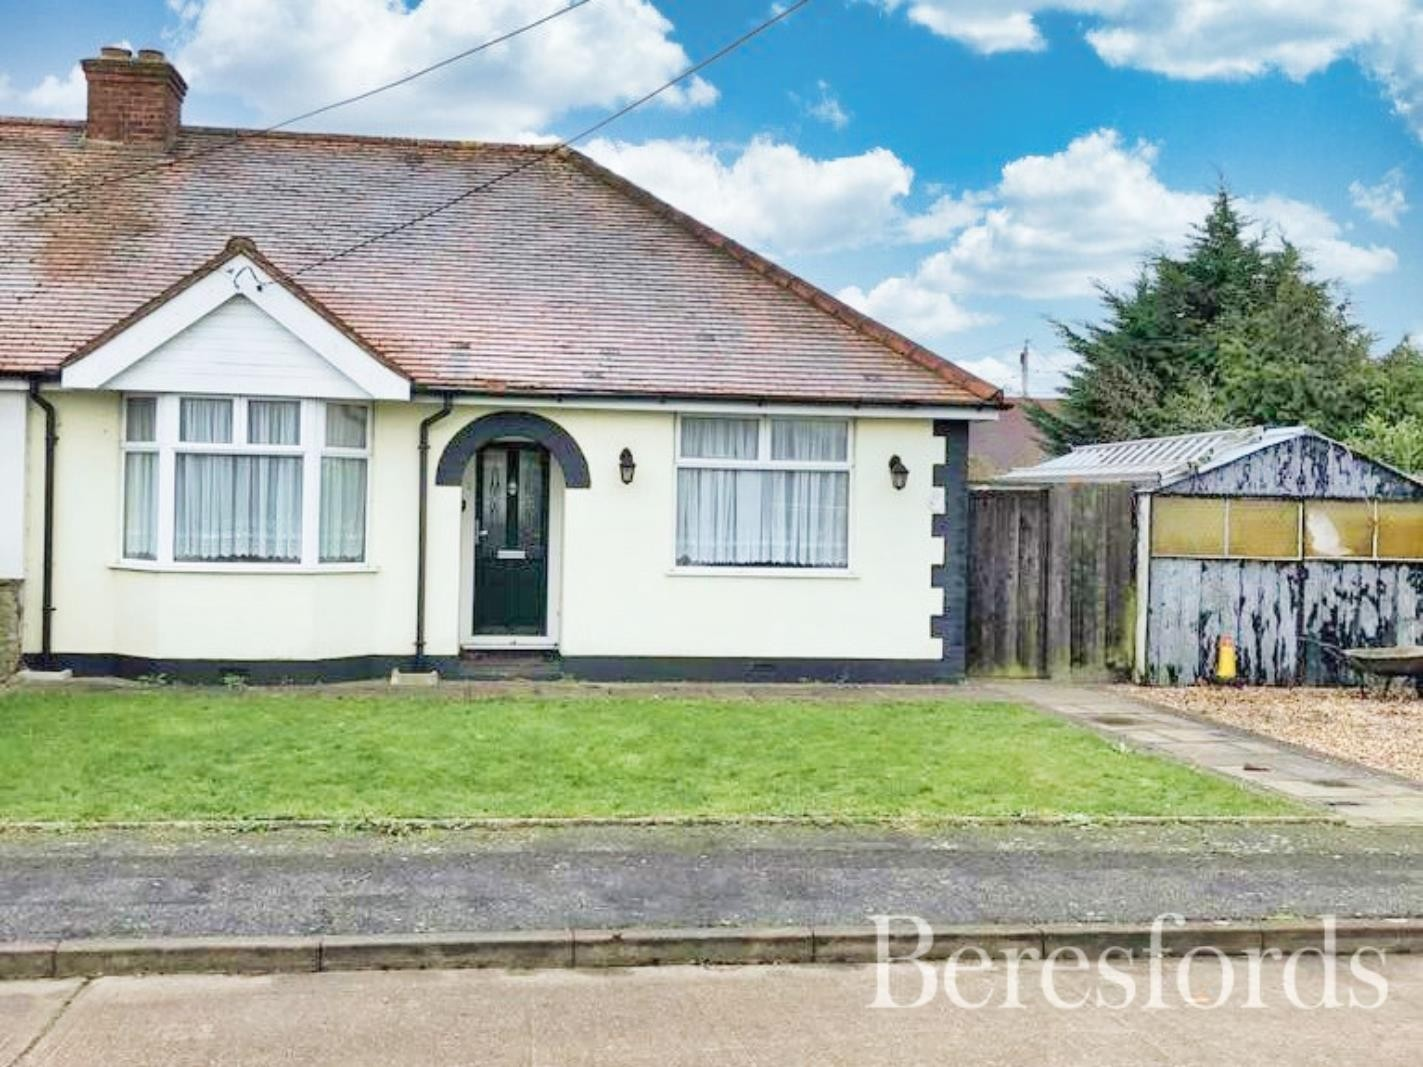 Cheelson Road, South Ockendon, Essex, RM15